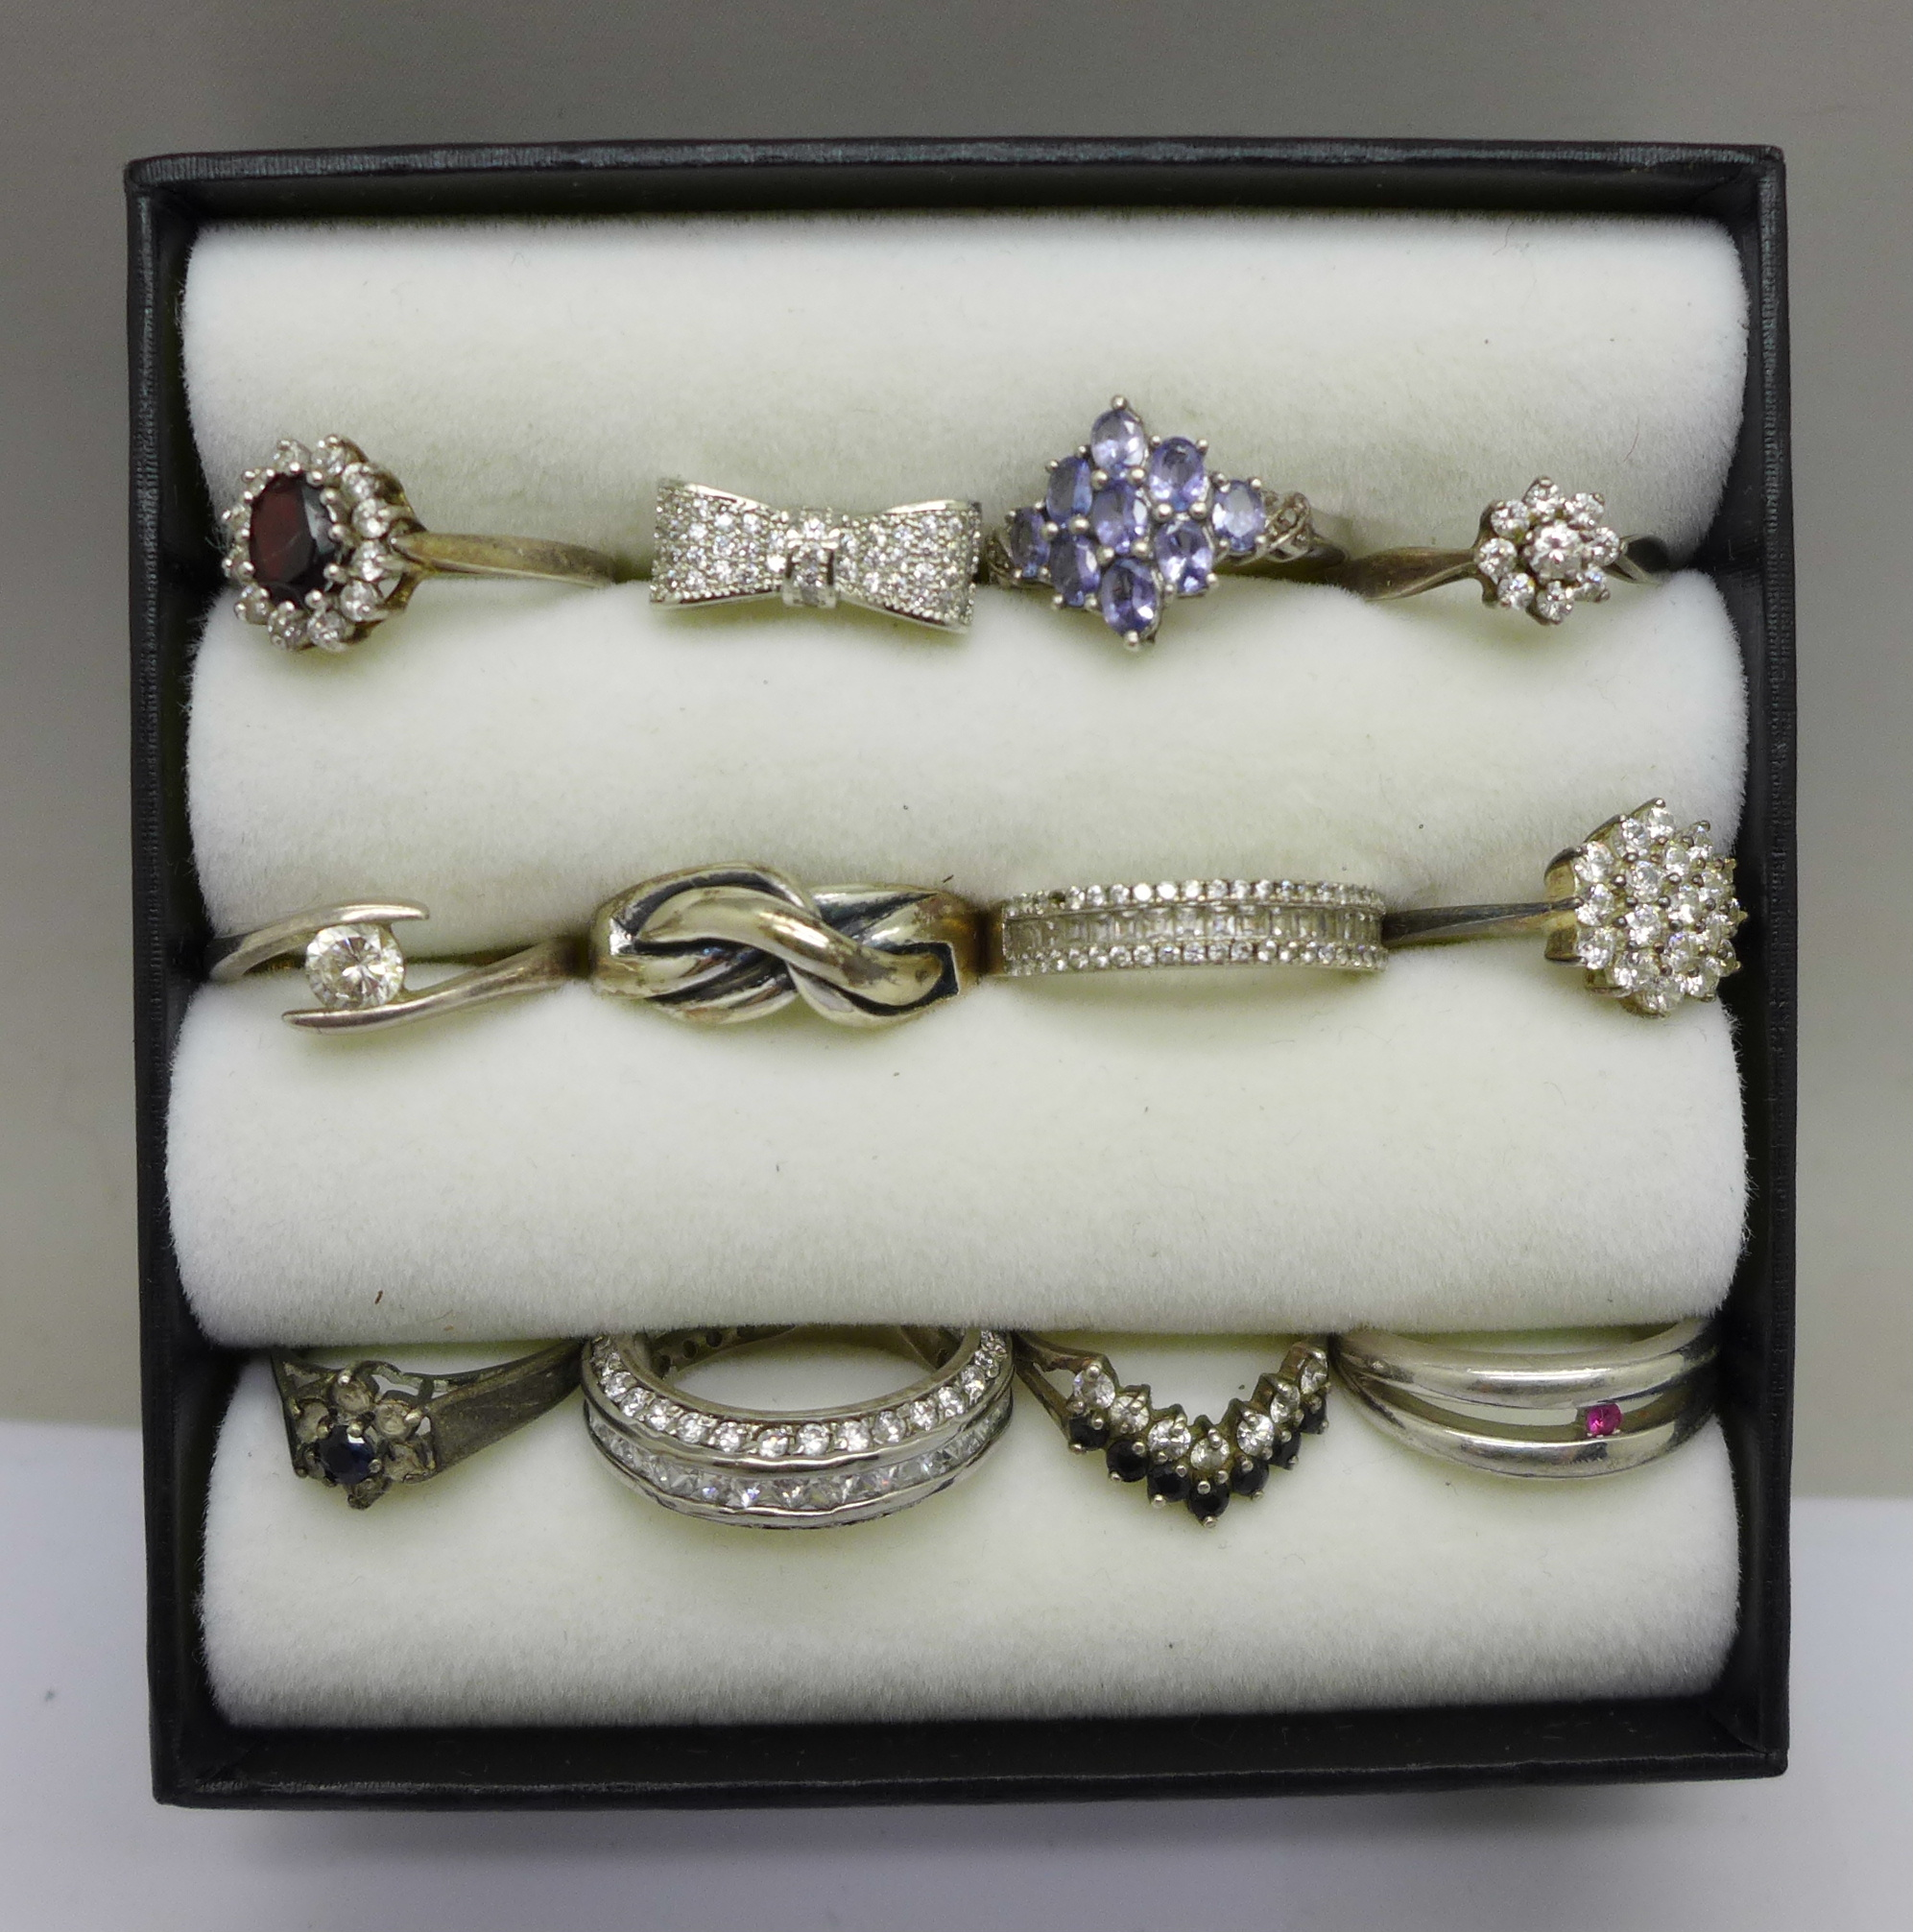 Twelve silver dress rings, most set with stones